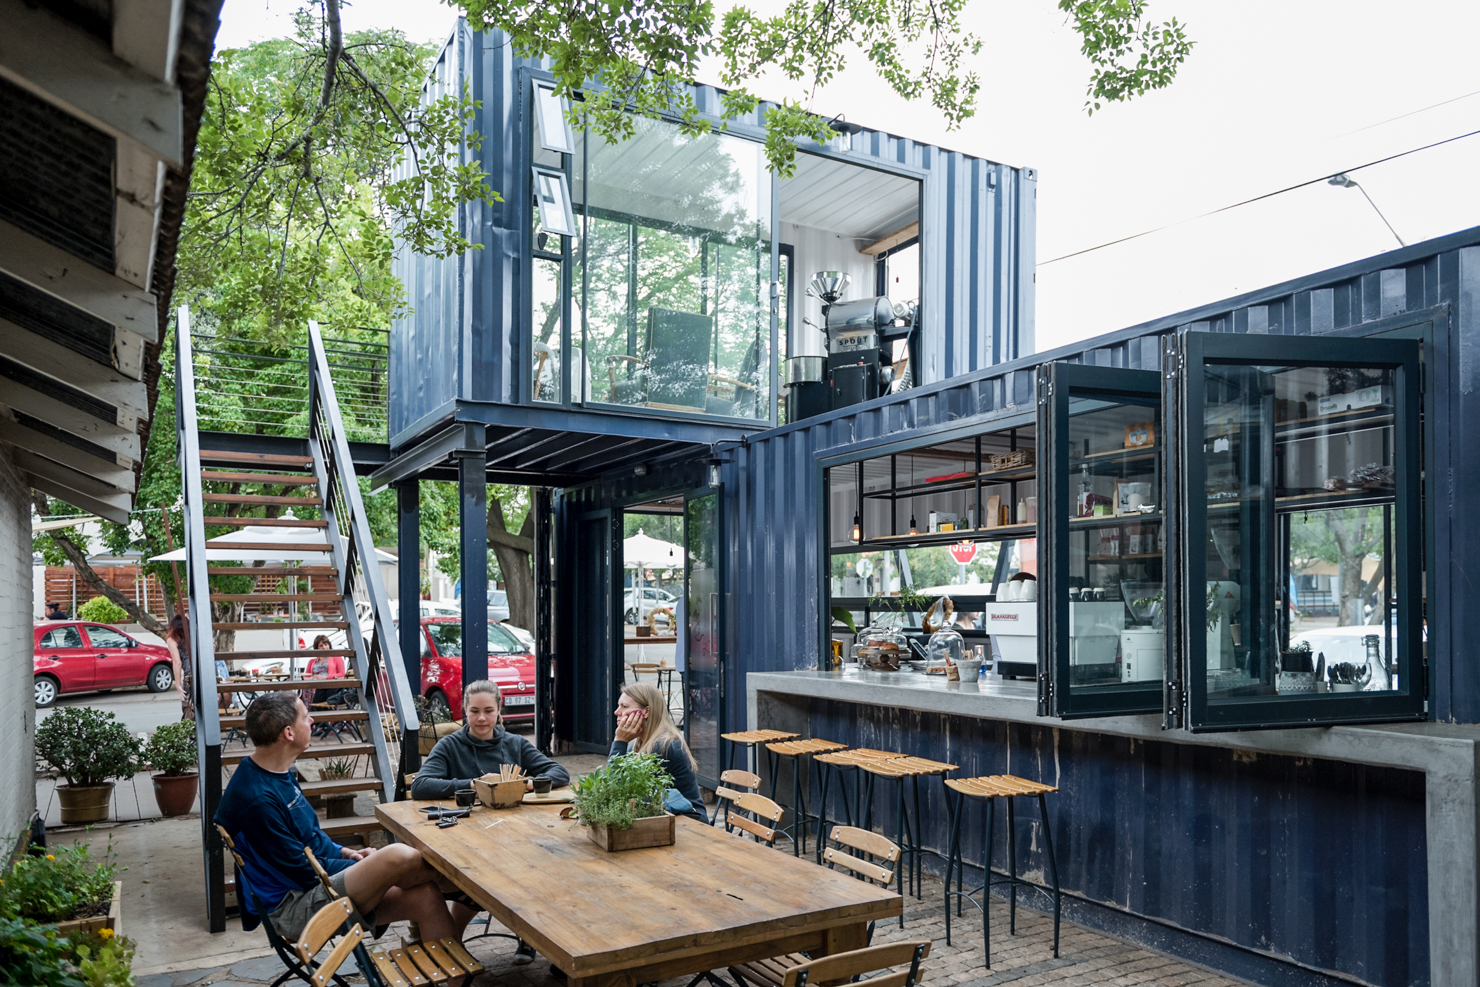 Green Cuisine Cafe Spout Coffee A Modern Container Coffee Shop In Pretoria